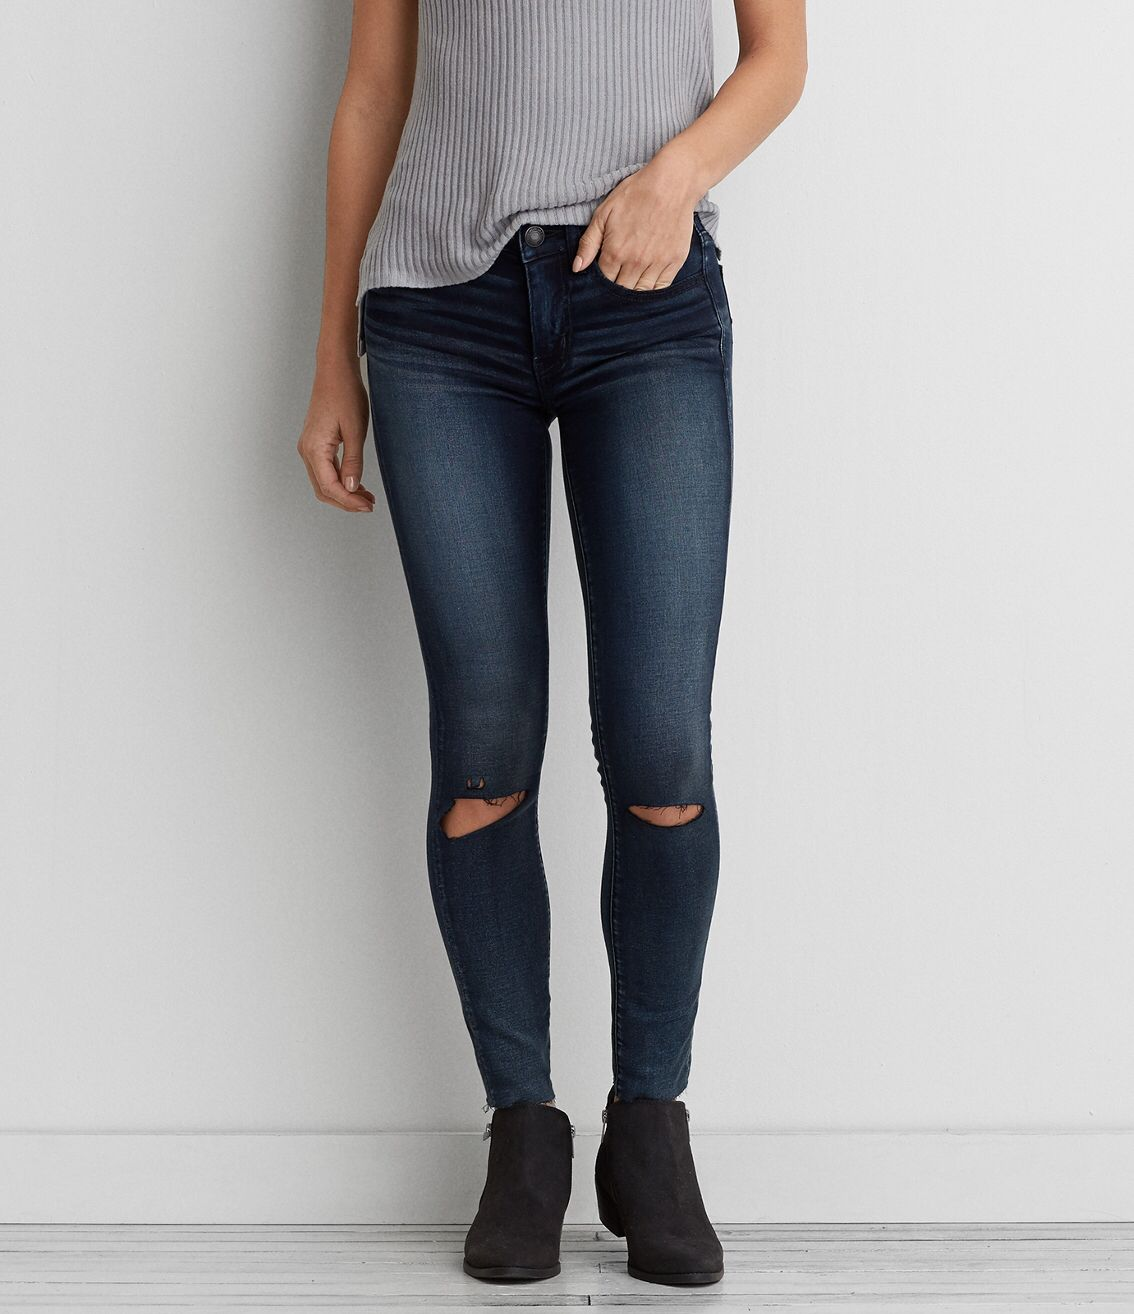 I'm sharing the love with you! Check out the cool stuff I just found at AEO: https://www.ae.com/web/browse/product.jsp?productId=0431_9766_486